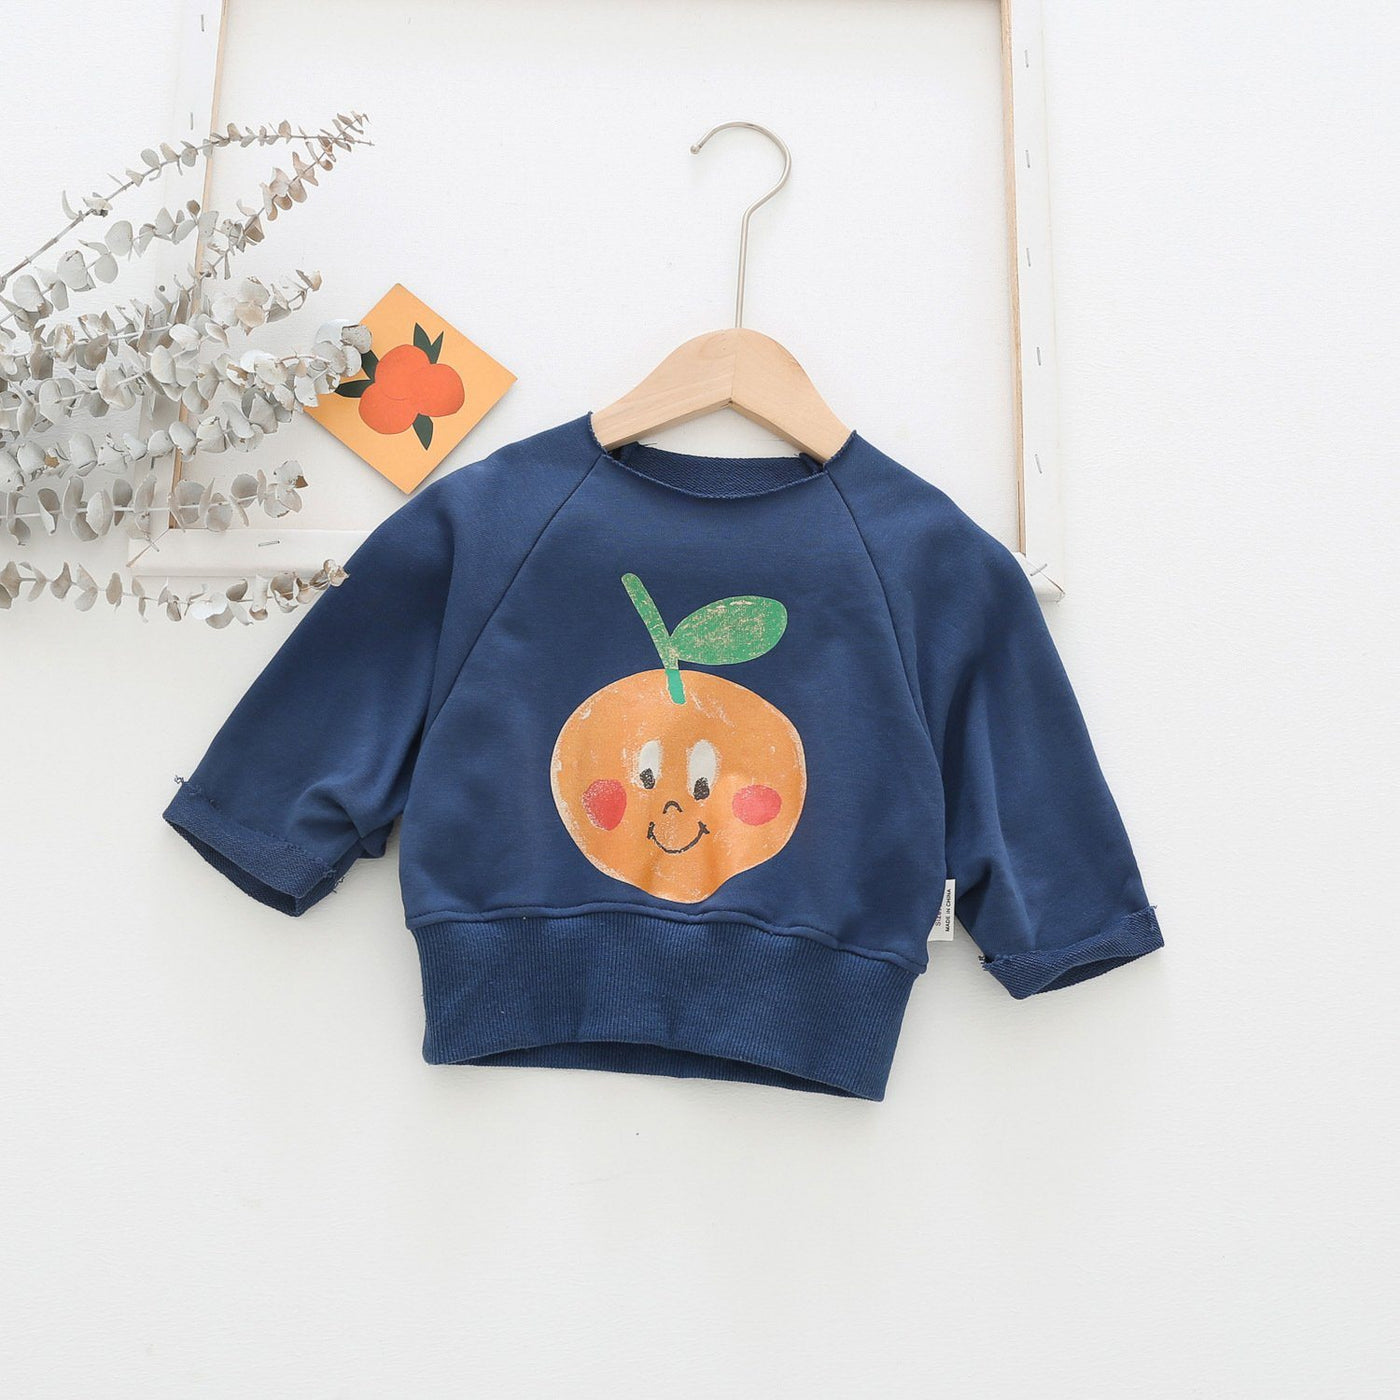 Alex + Nova Happy Orange Sweatshirt - Alex + Nova